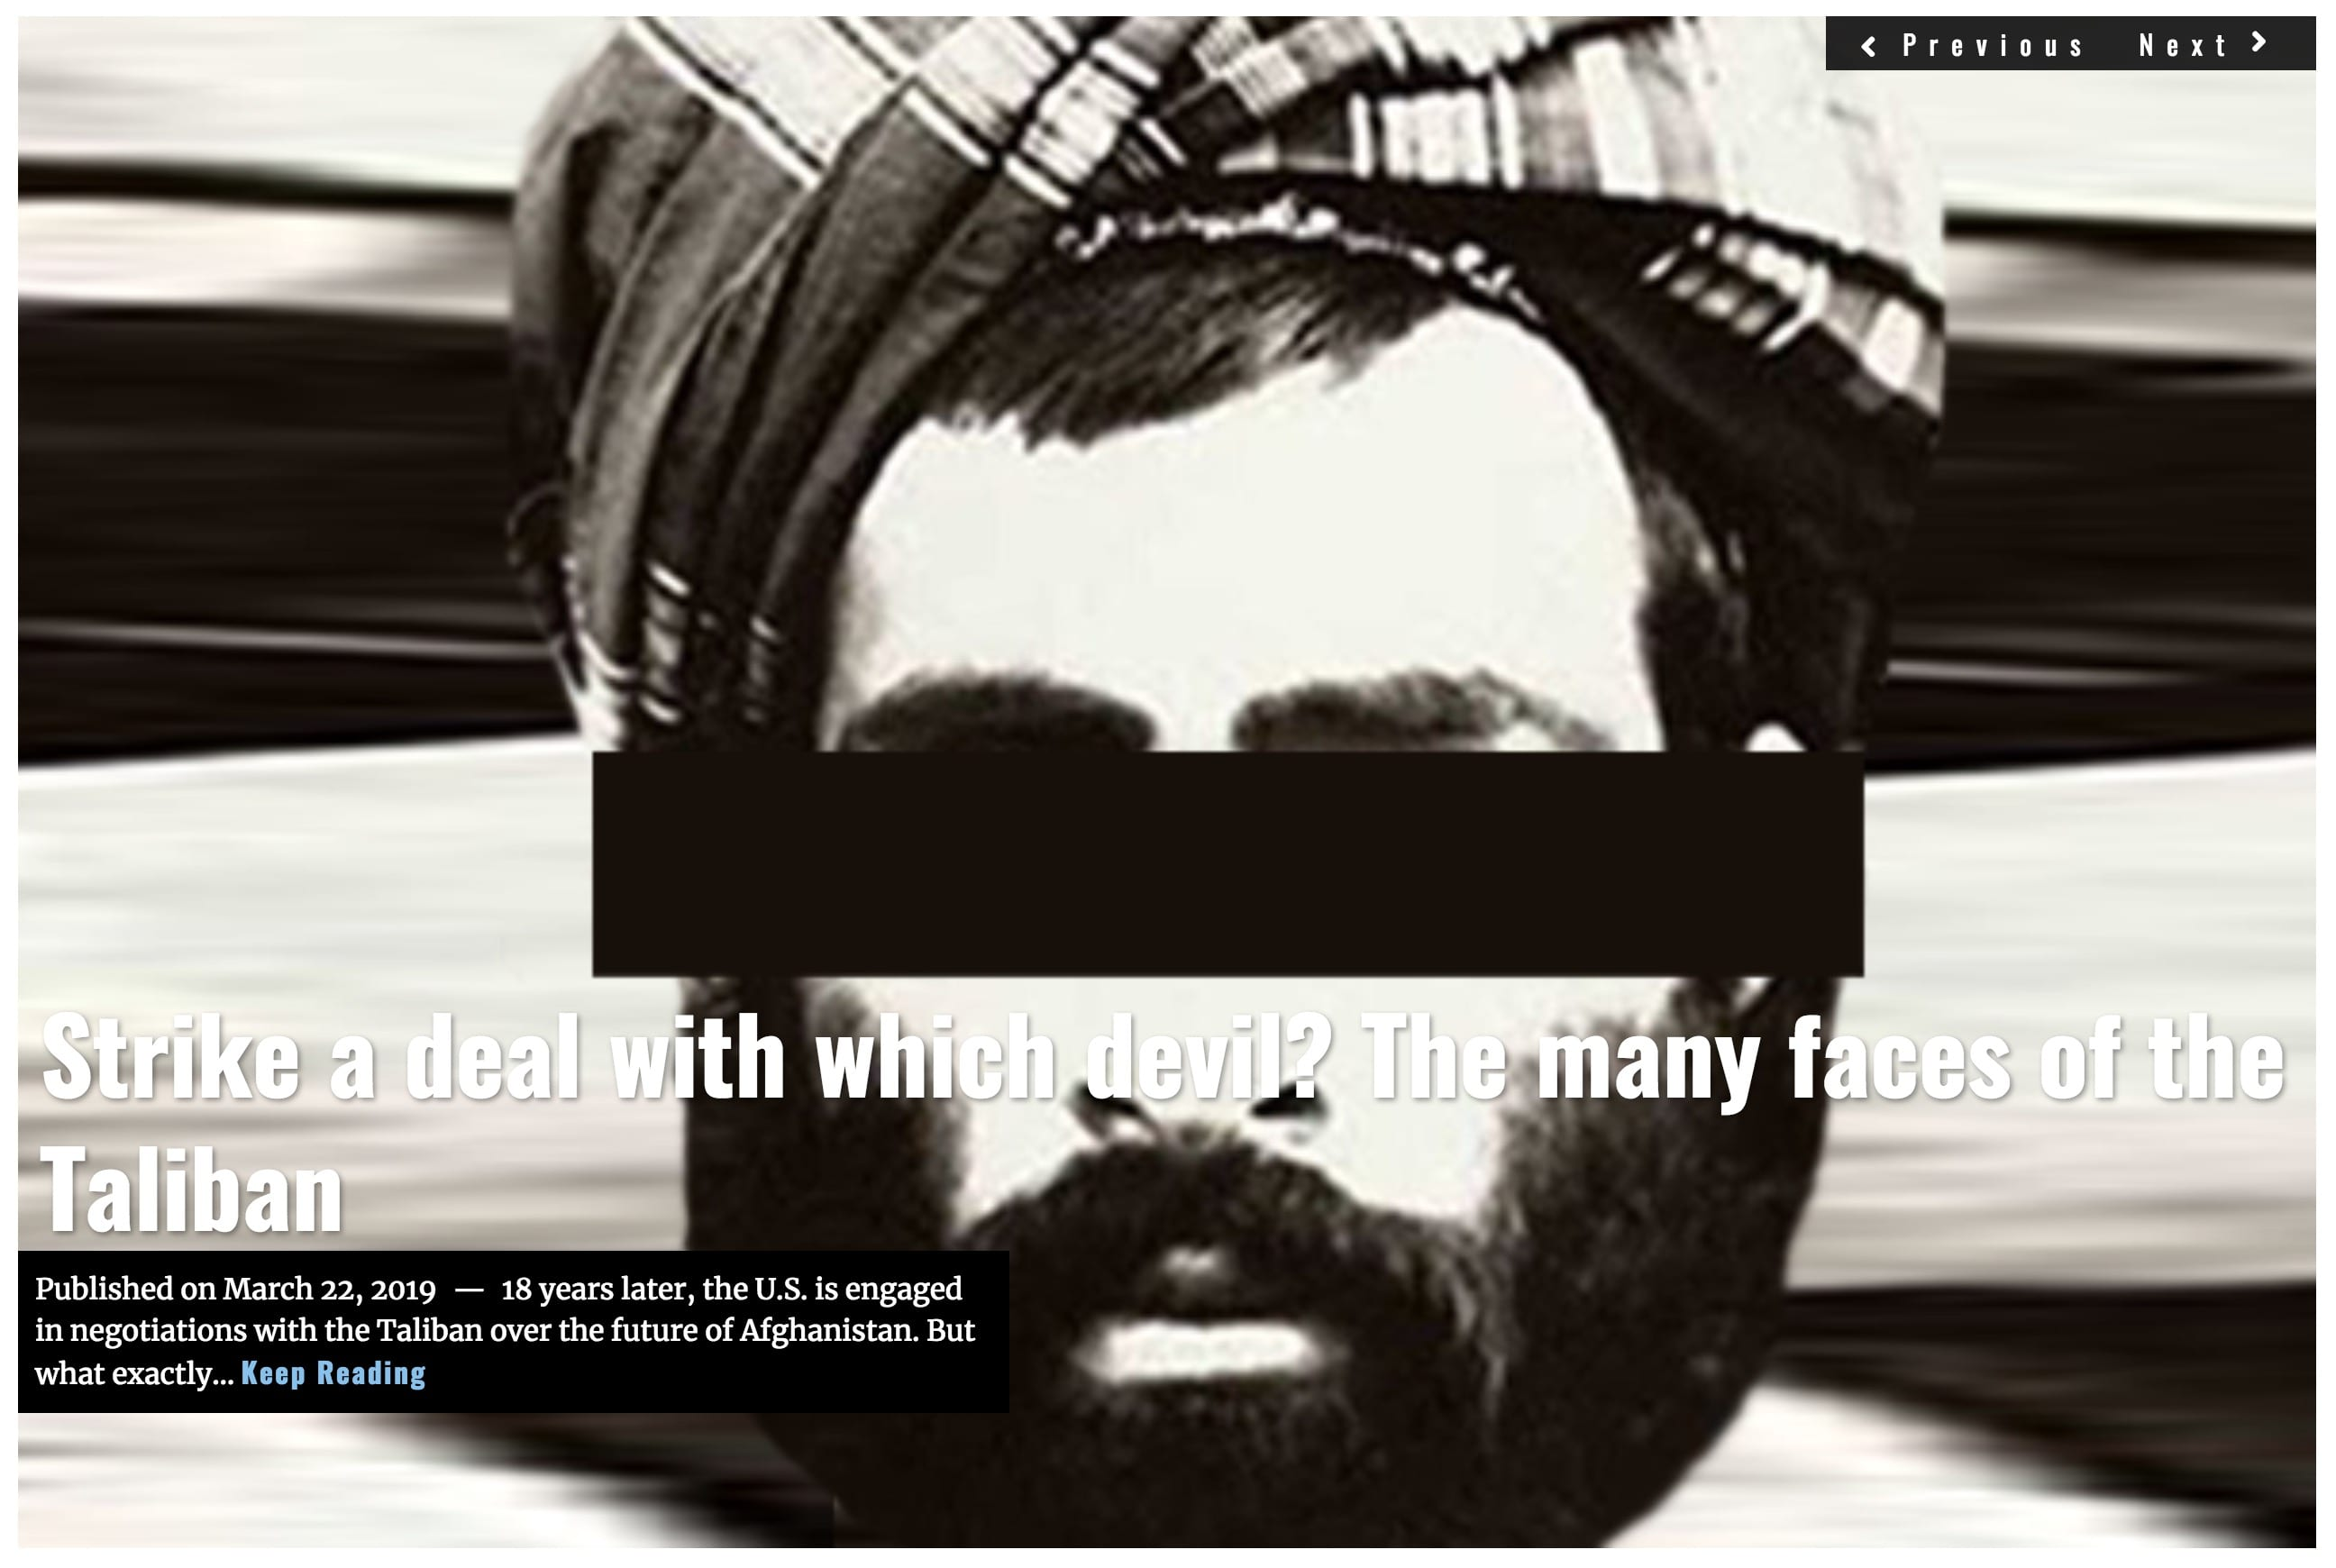 Image Lima Charlie New Headline - Strike a deal with the devil - J. Sjoholm MAR 22 2019